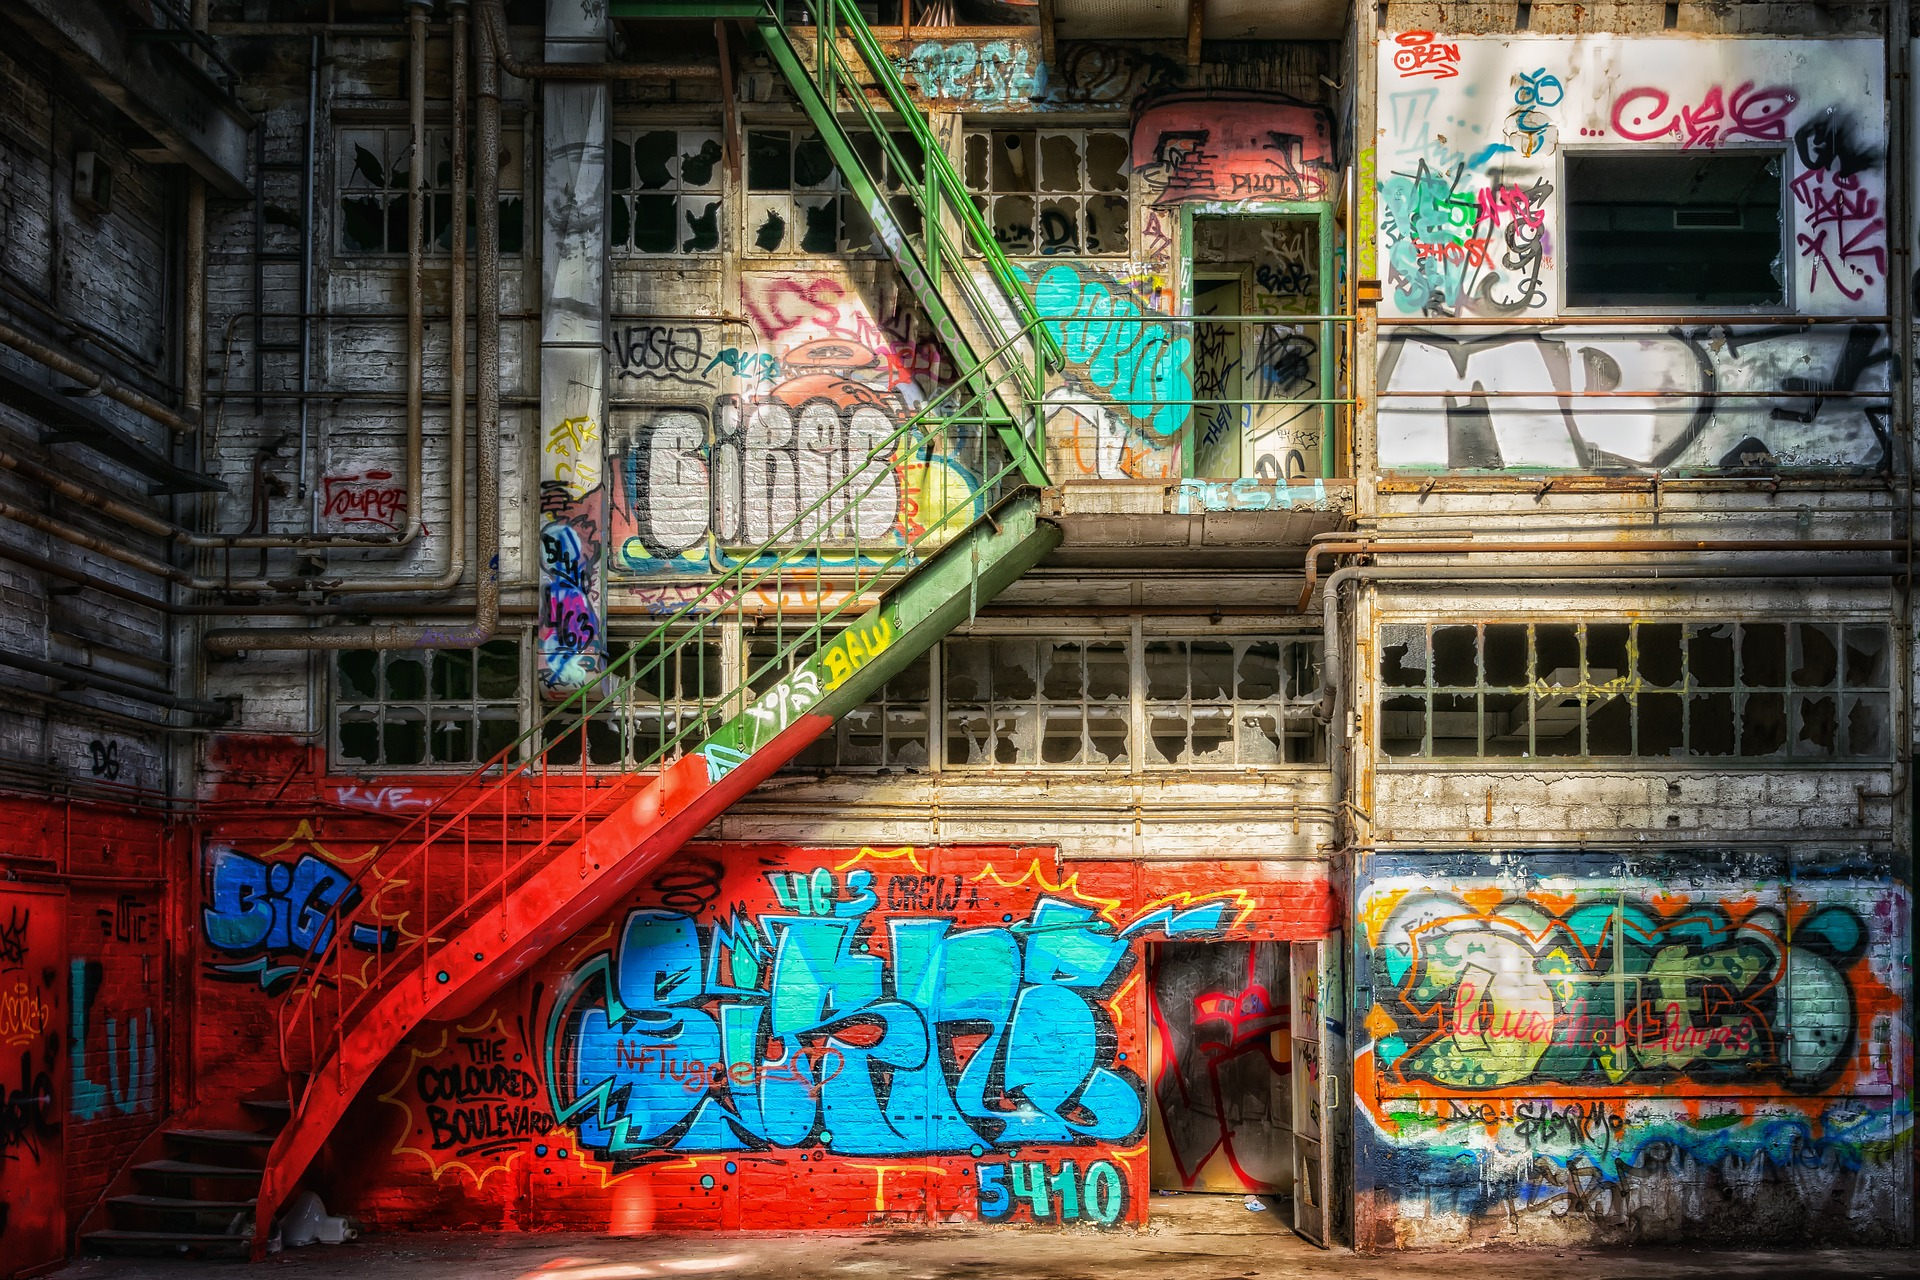 This street artist is translating graffiti check it out